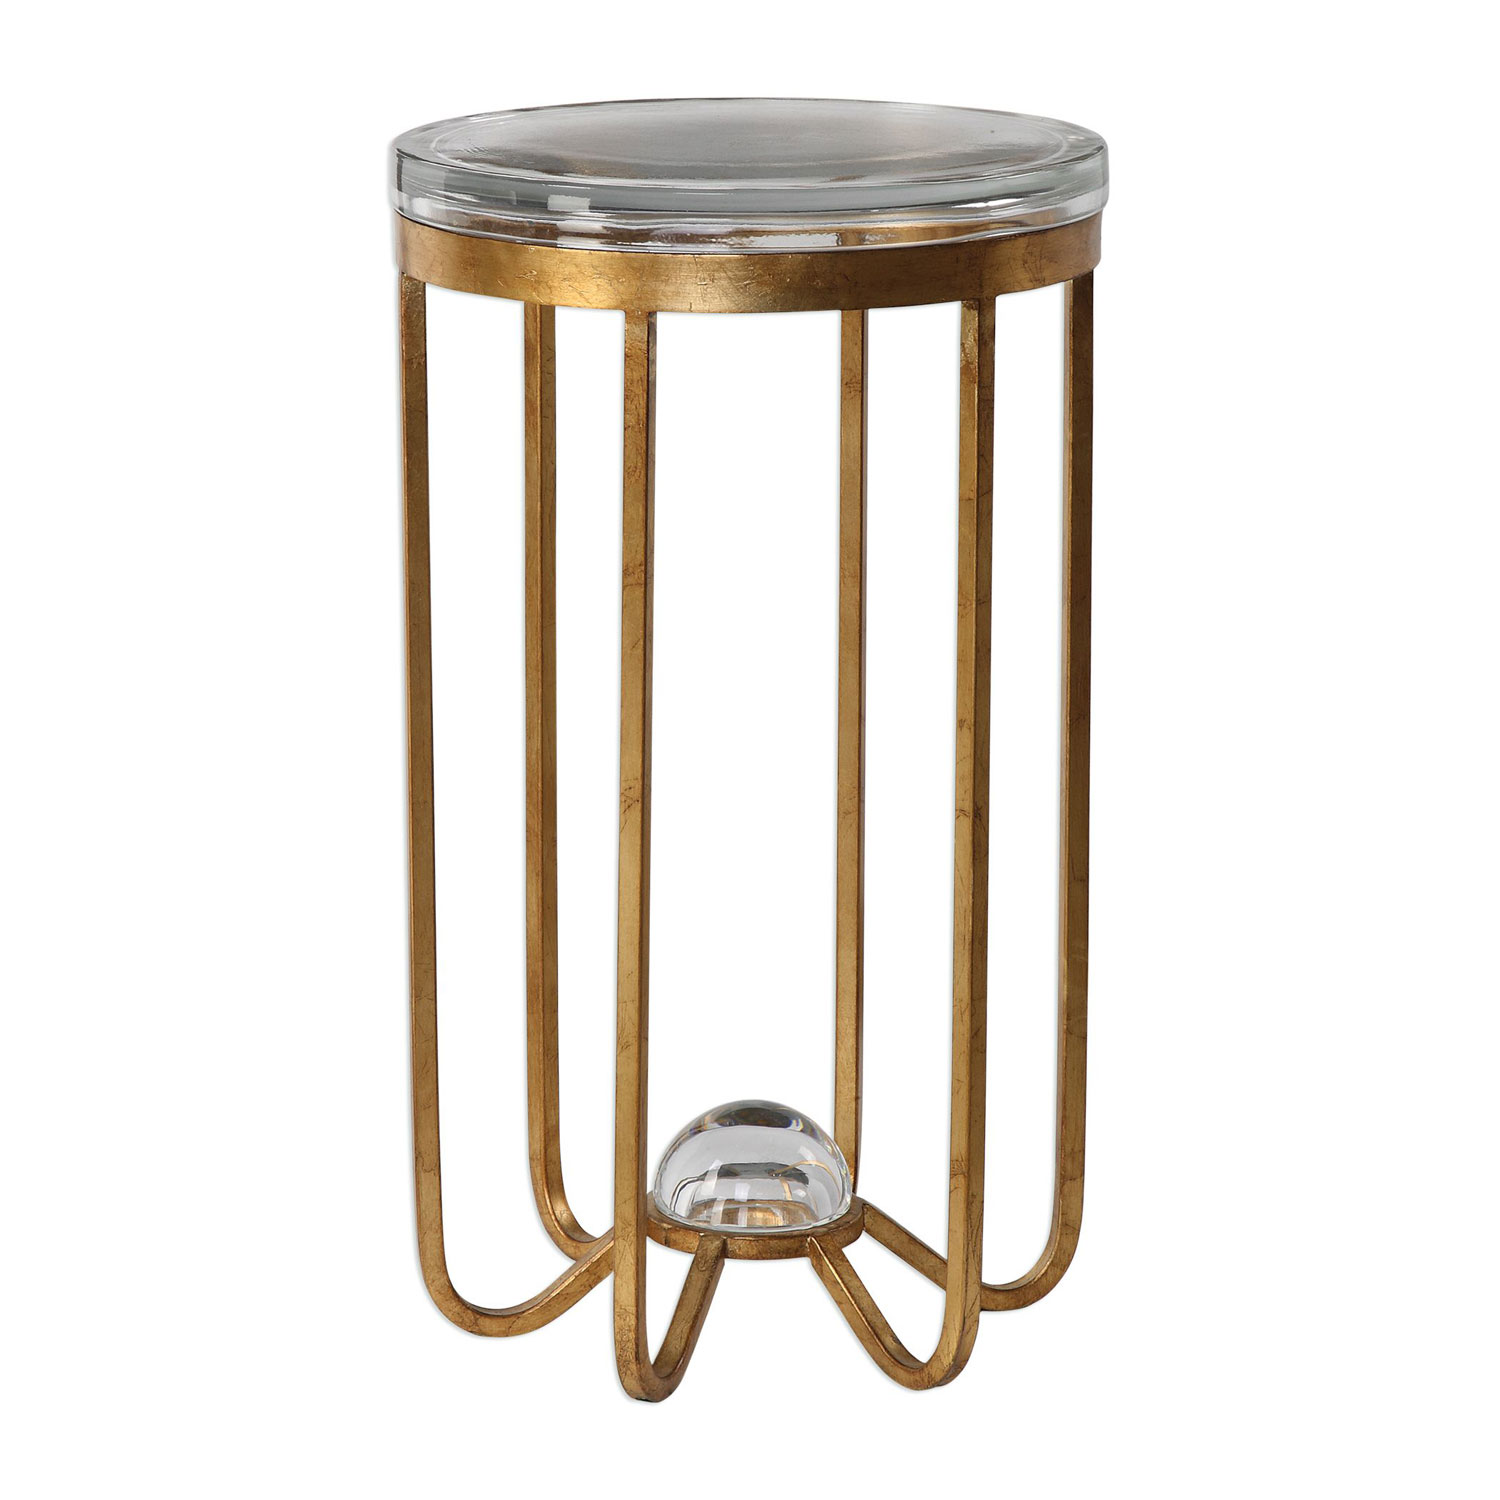 uttermost allura gold accent table bellacor hover zoom gray entryway with shoe storage entry for small spaces home accents dishes canopy umbrella tall occasional drum throne drop